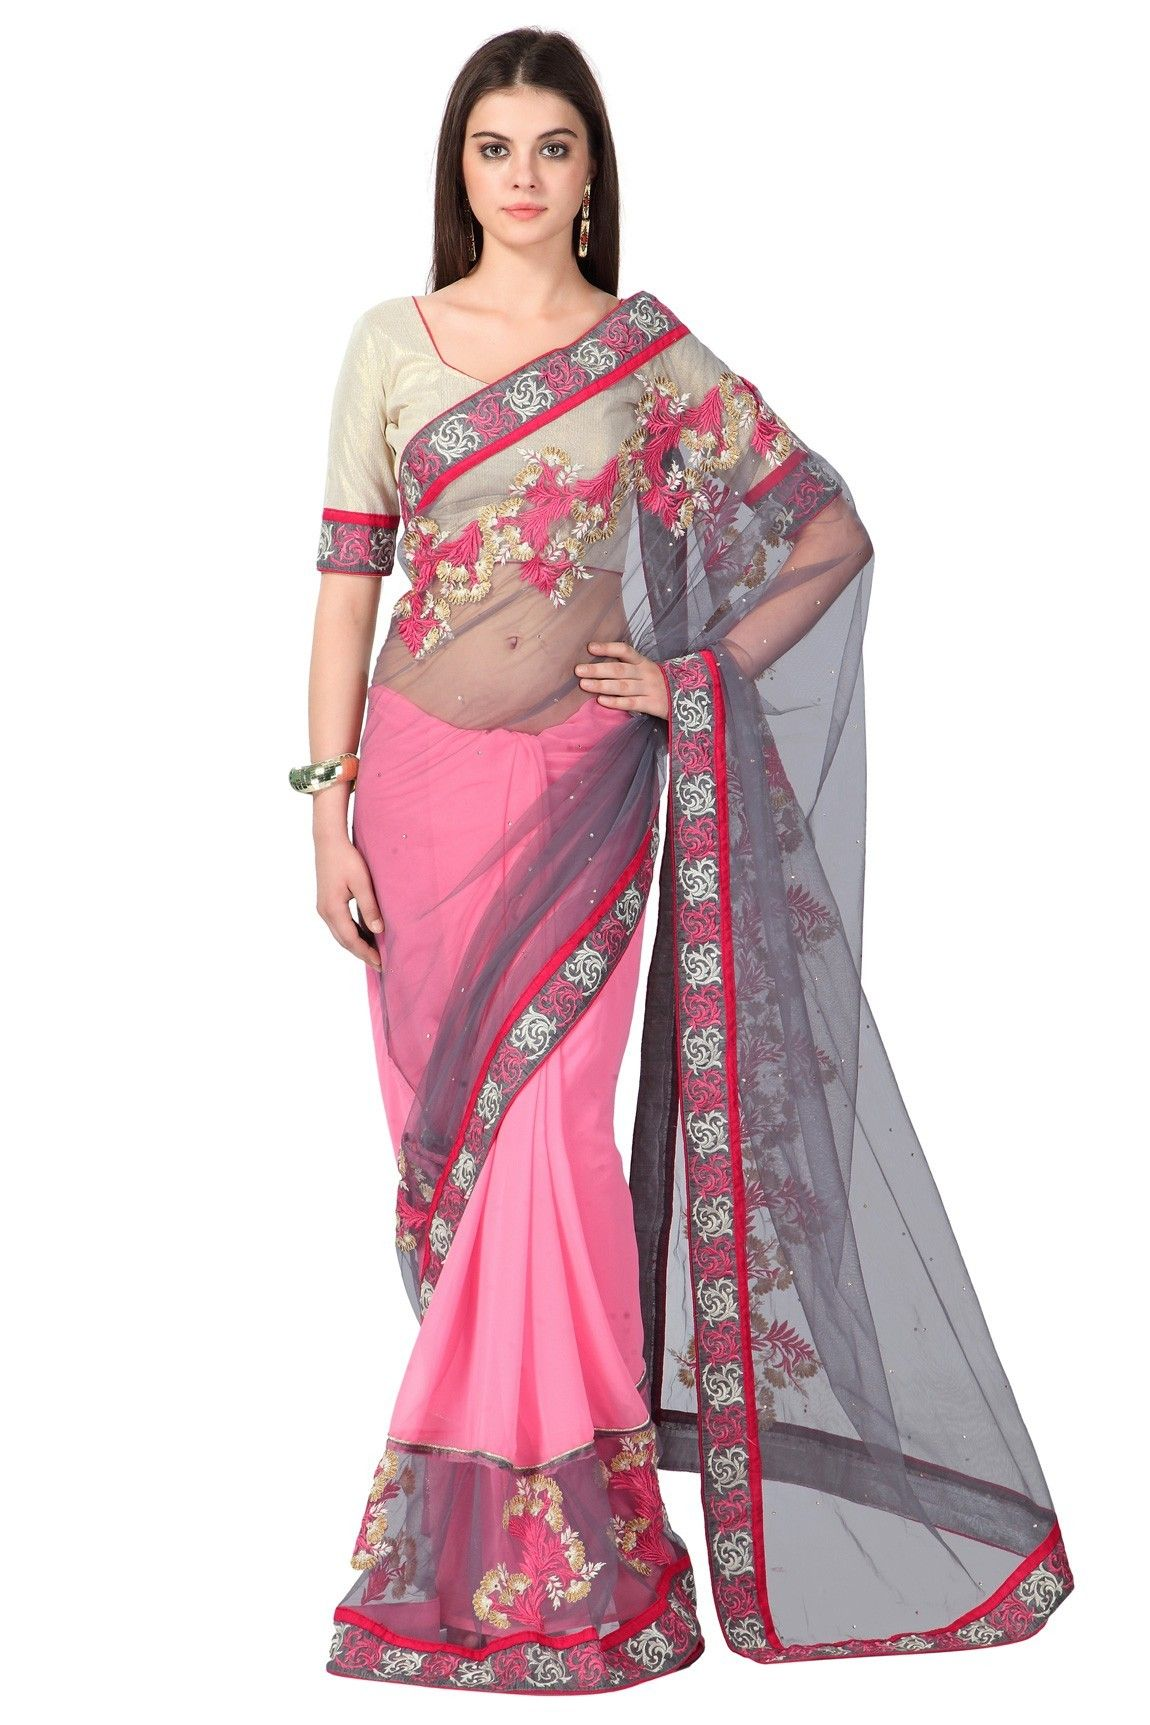 When you got to Impress, draping a #Gorgeous #Saree is the only way!Our Price: INR 2,768Shop Now: http://www.admyrin.com/catalogs/suhani-vol-2/grey-and-pink-net-georgette-saree-with-gold-brocade-blouse-piece.htmlView Entire Collection: http://www.admyrin.com/catalogs/suhani-vol-2.html#Sari #Occasion #Festive #Party #Net #Pink #Grey #COD